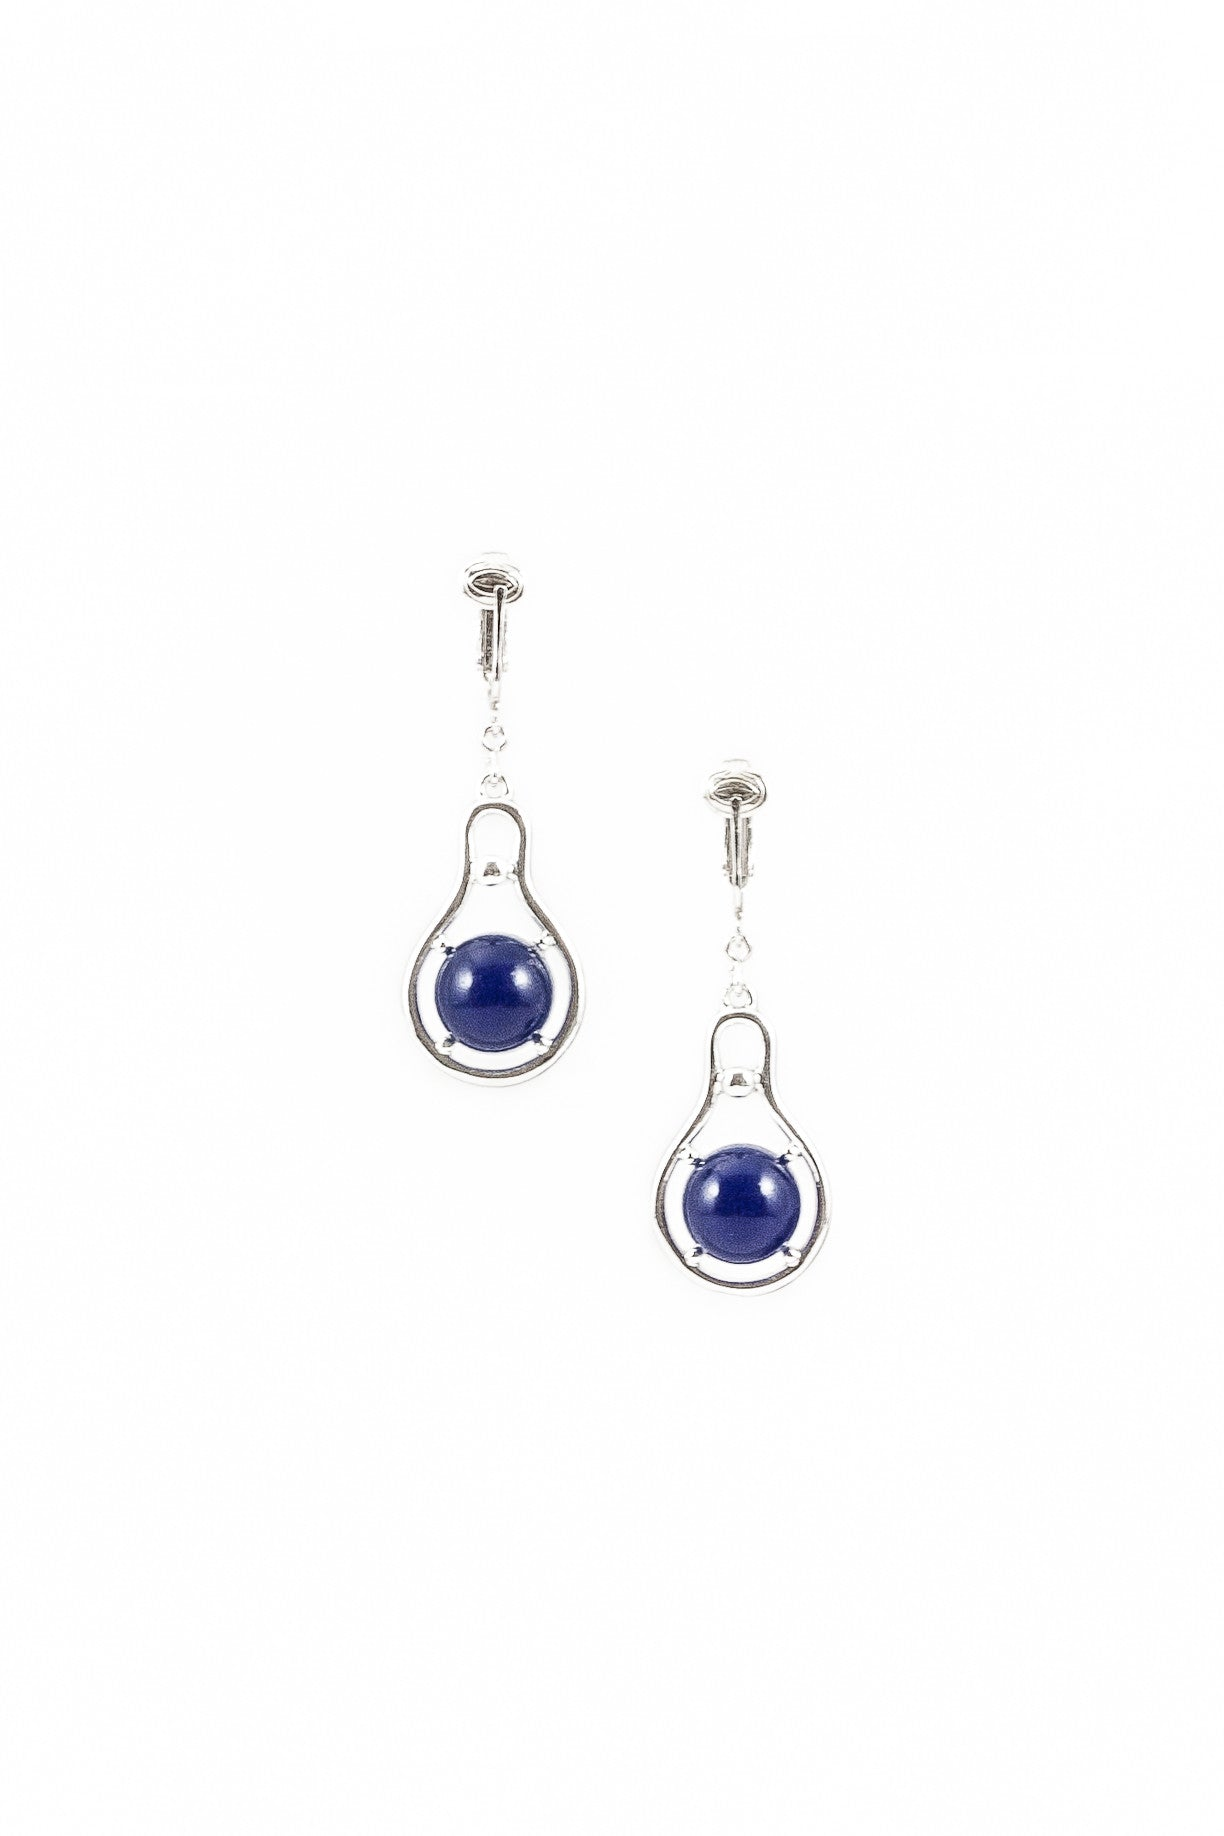 70's__Sarah Coventry__Blue Drop Earrings